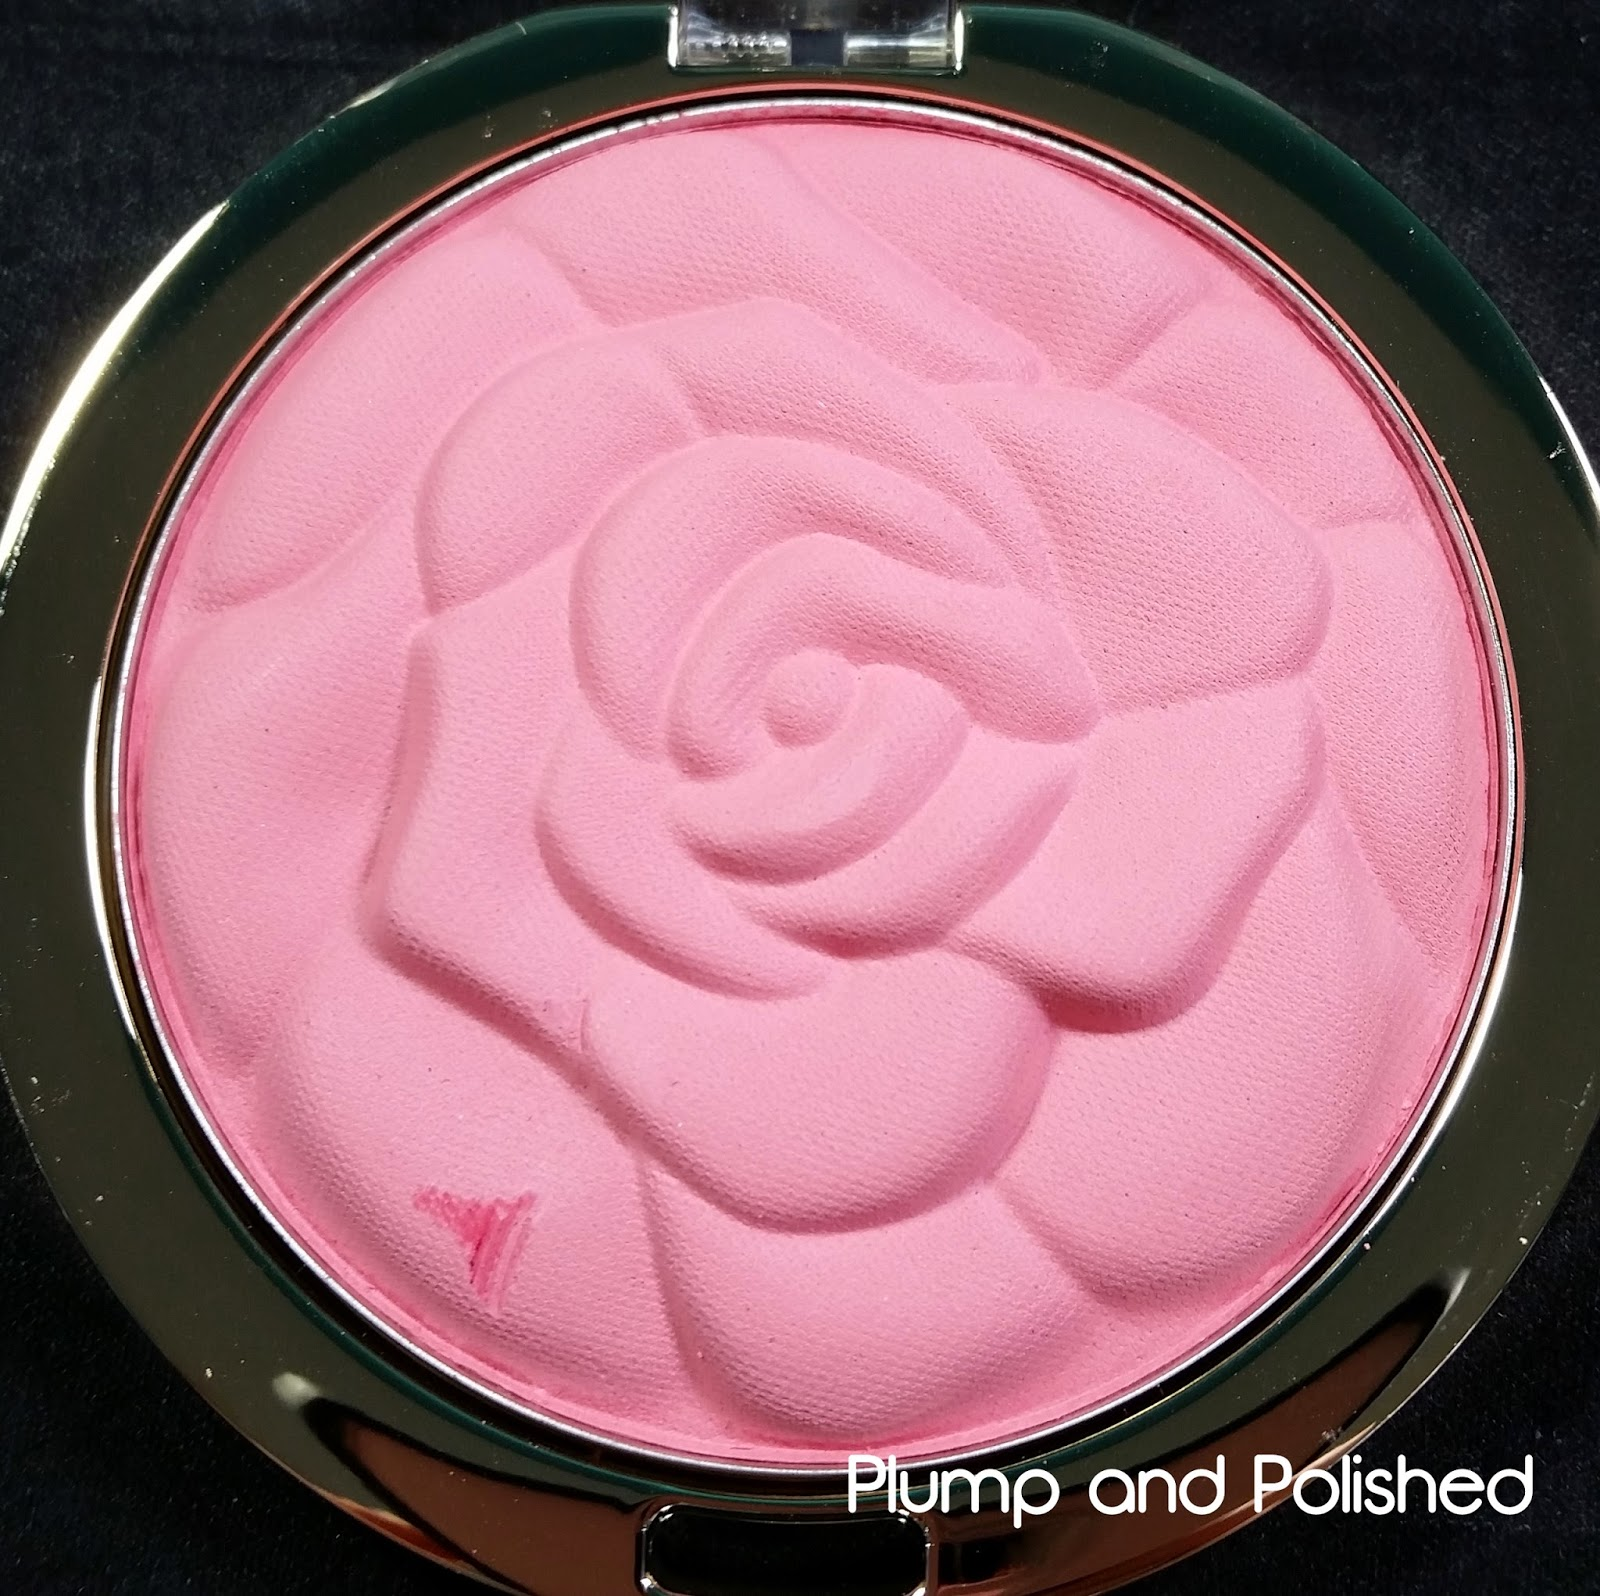 Milani - Rose Powder Blushes [Spring 2015] 08 Tea Rose